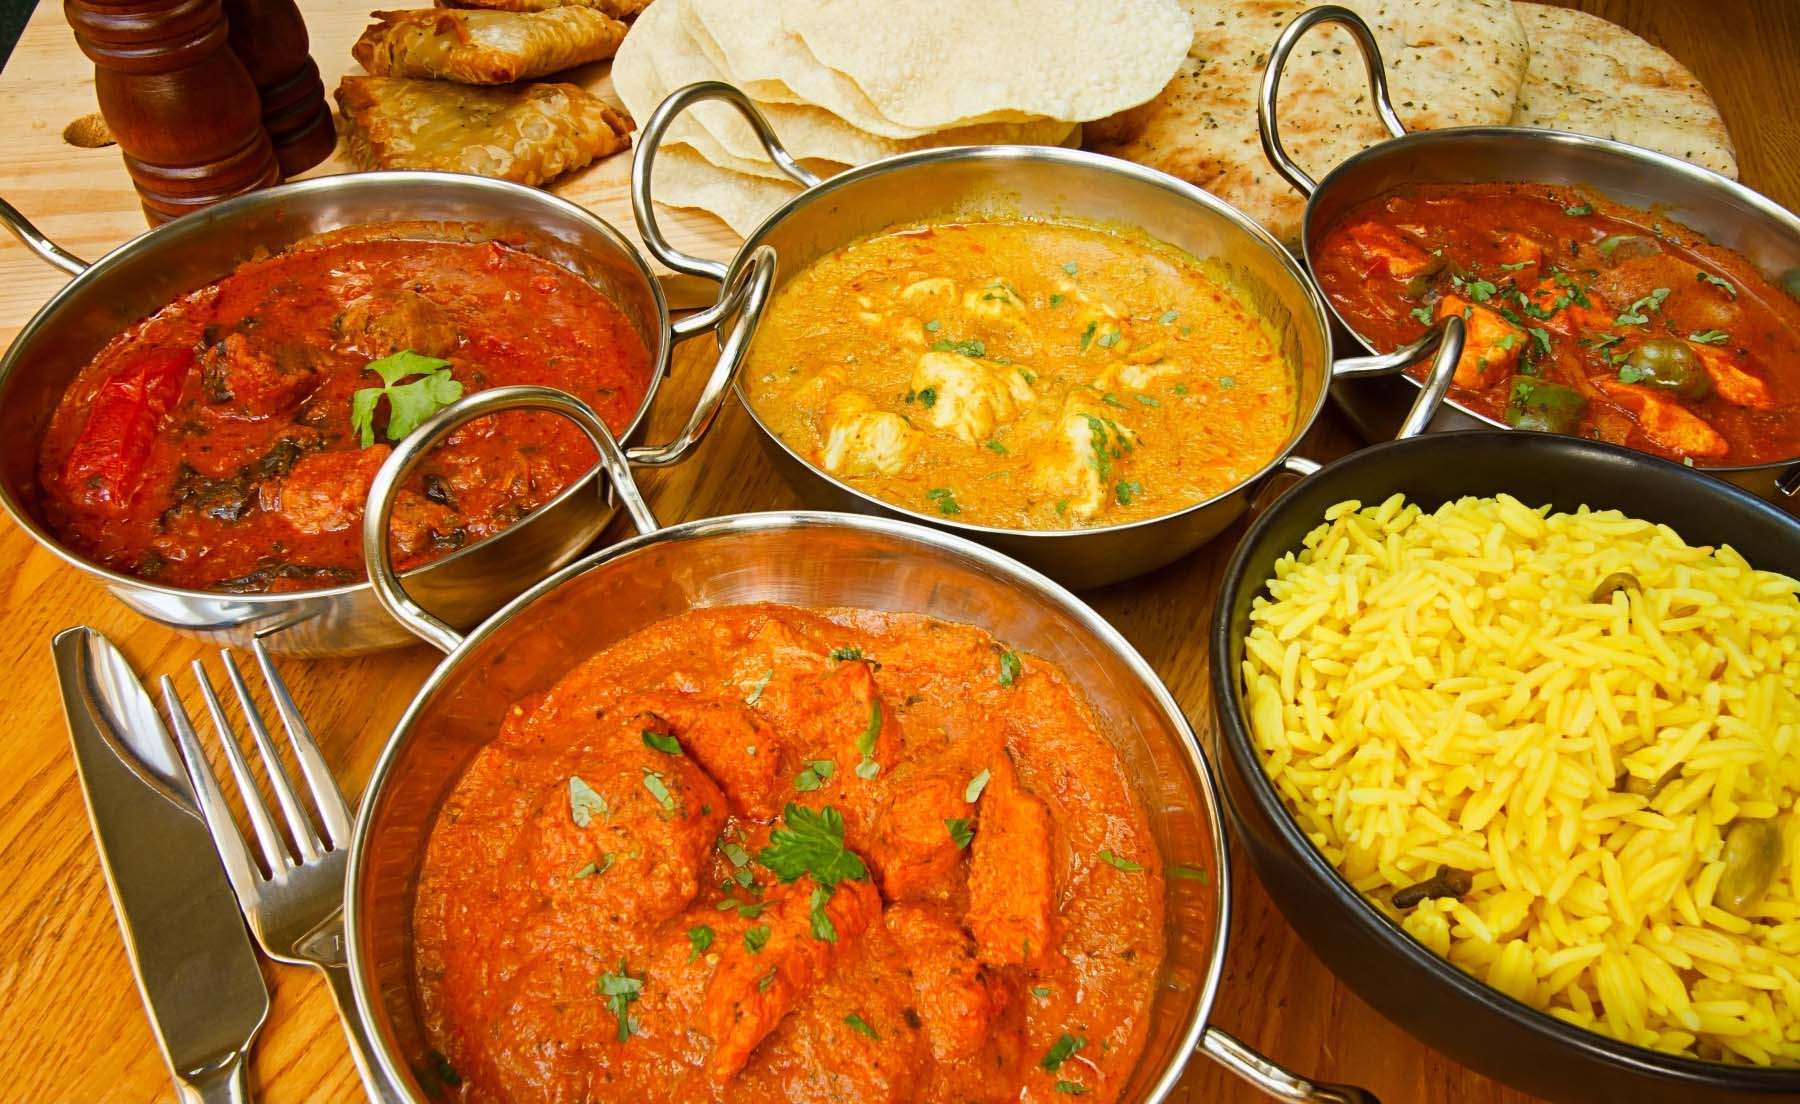 The 5 Best Restaurants For Spicy Food Lovers In Galway